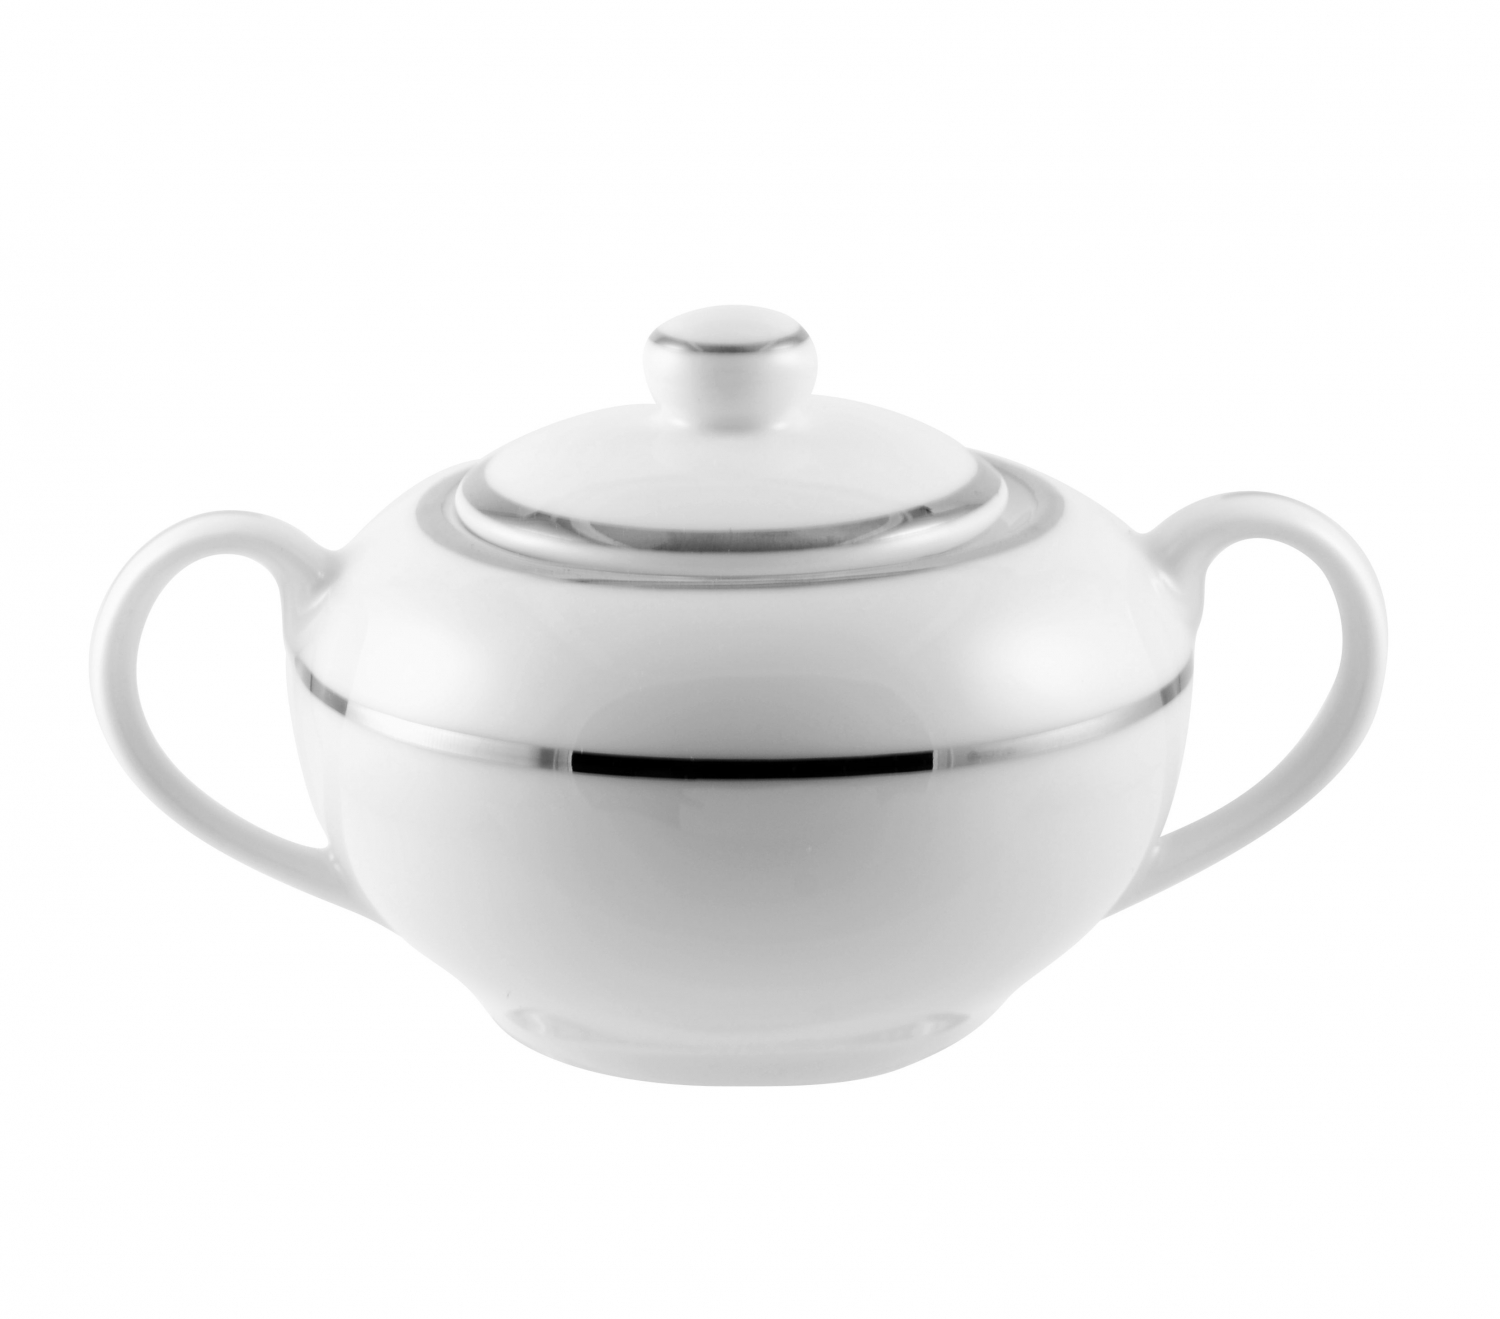 10 Strawberry Street DSL0018 8 oz. Double Silver Line Sugar Bowl With Lid